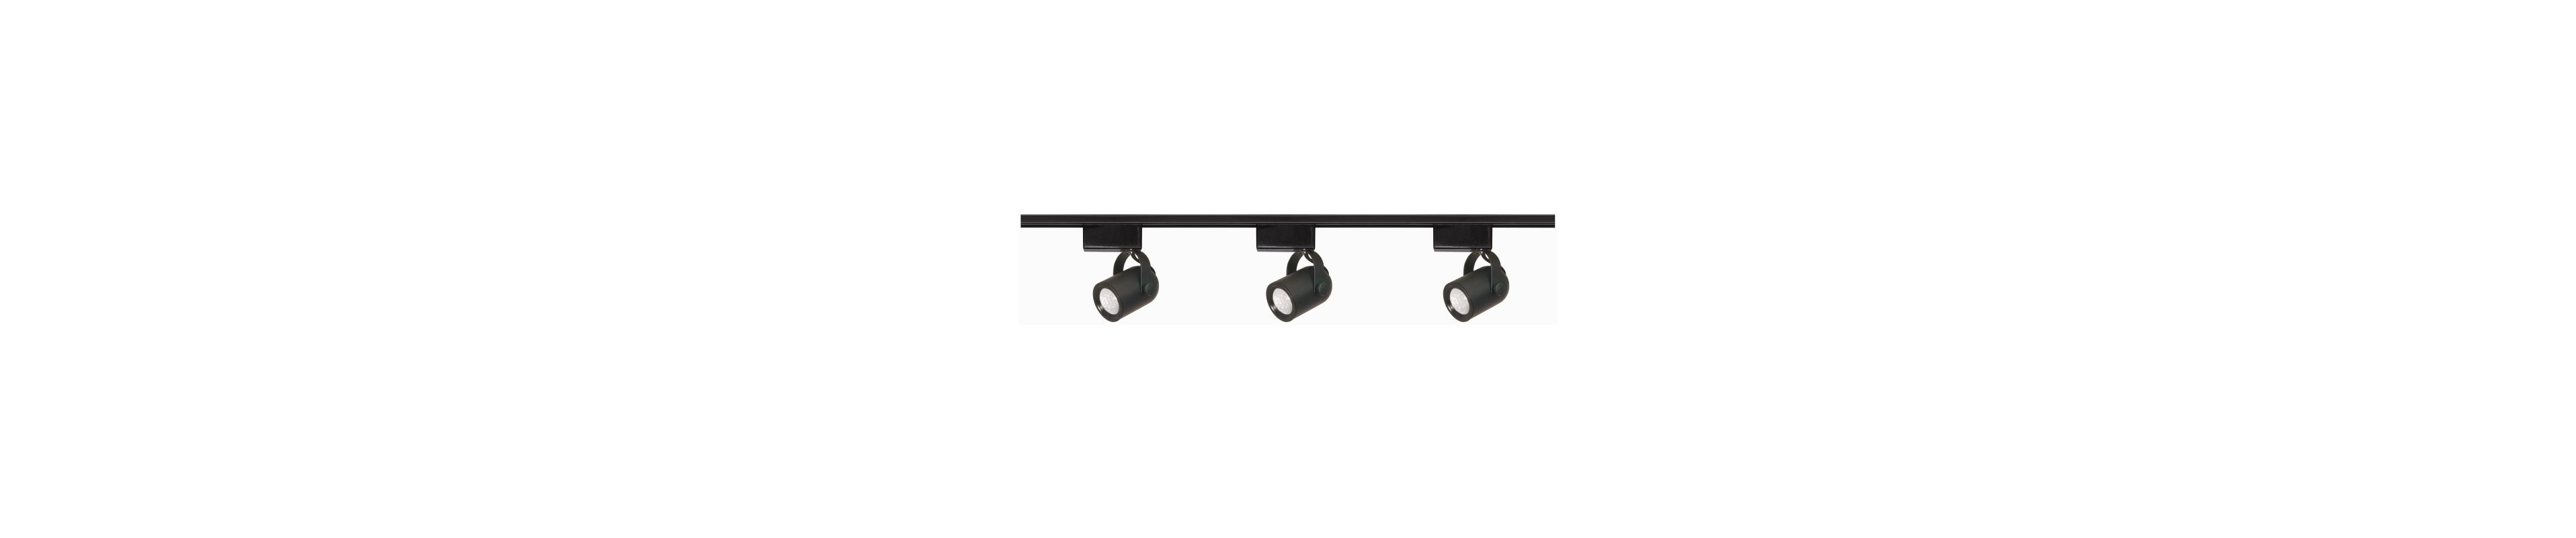 Nuvo Lighting TK313 Black Track Lighting Three Light MR16 Round Back Low Voltage Track Kit in Black Finish